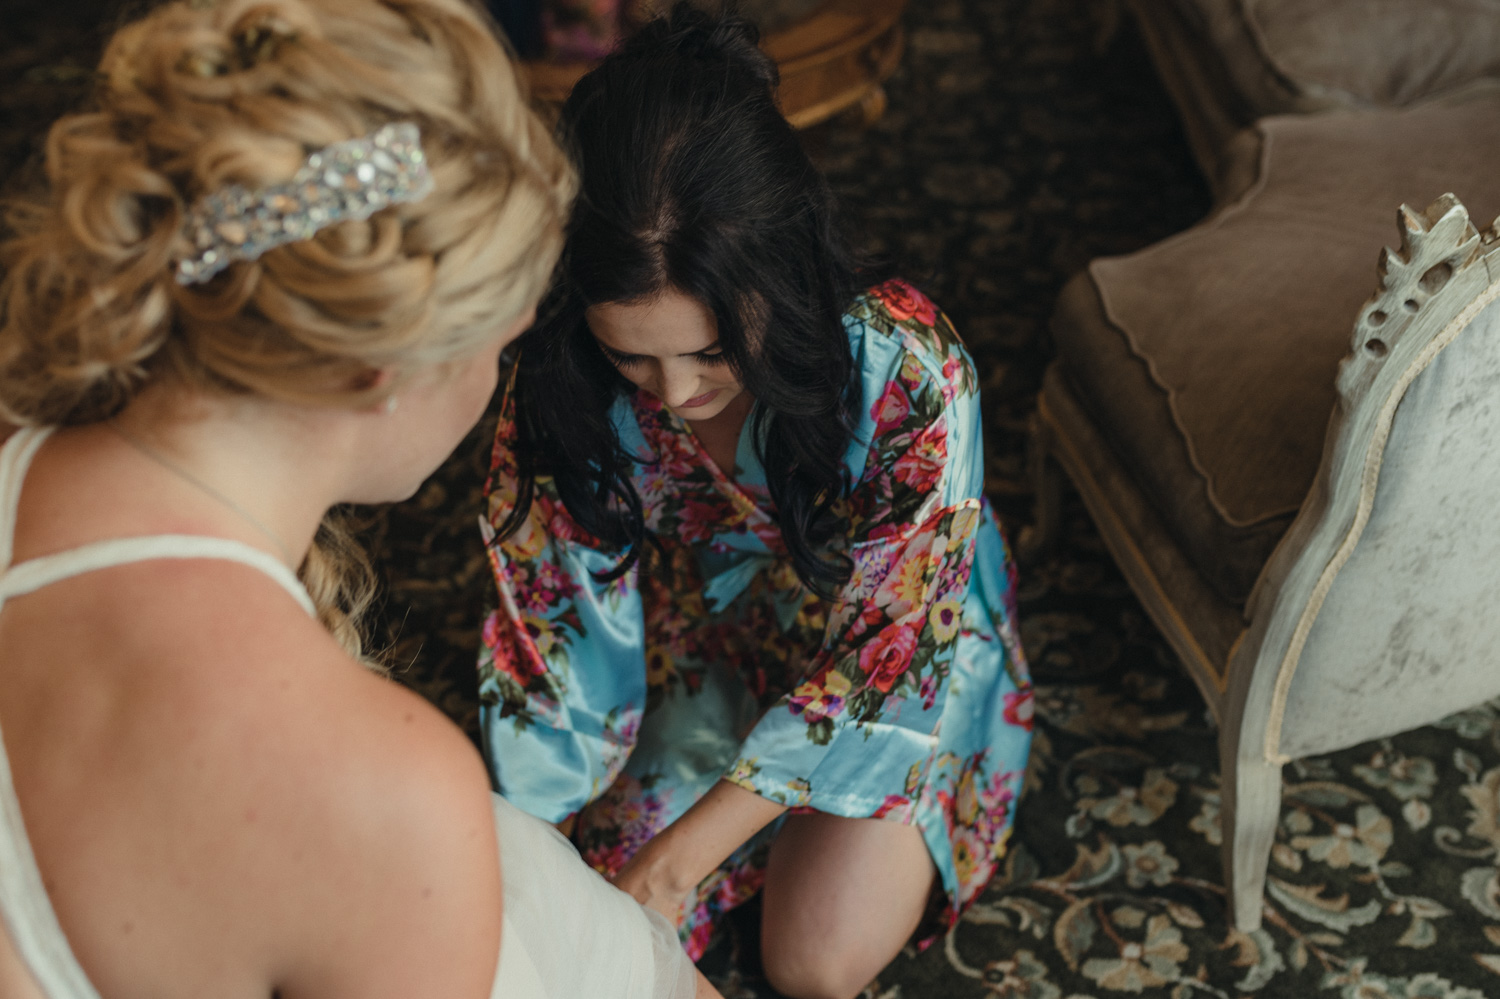 Wedgewood Sequoia Mansion wedding MOH putting on brides shoes photo